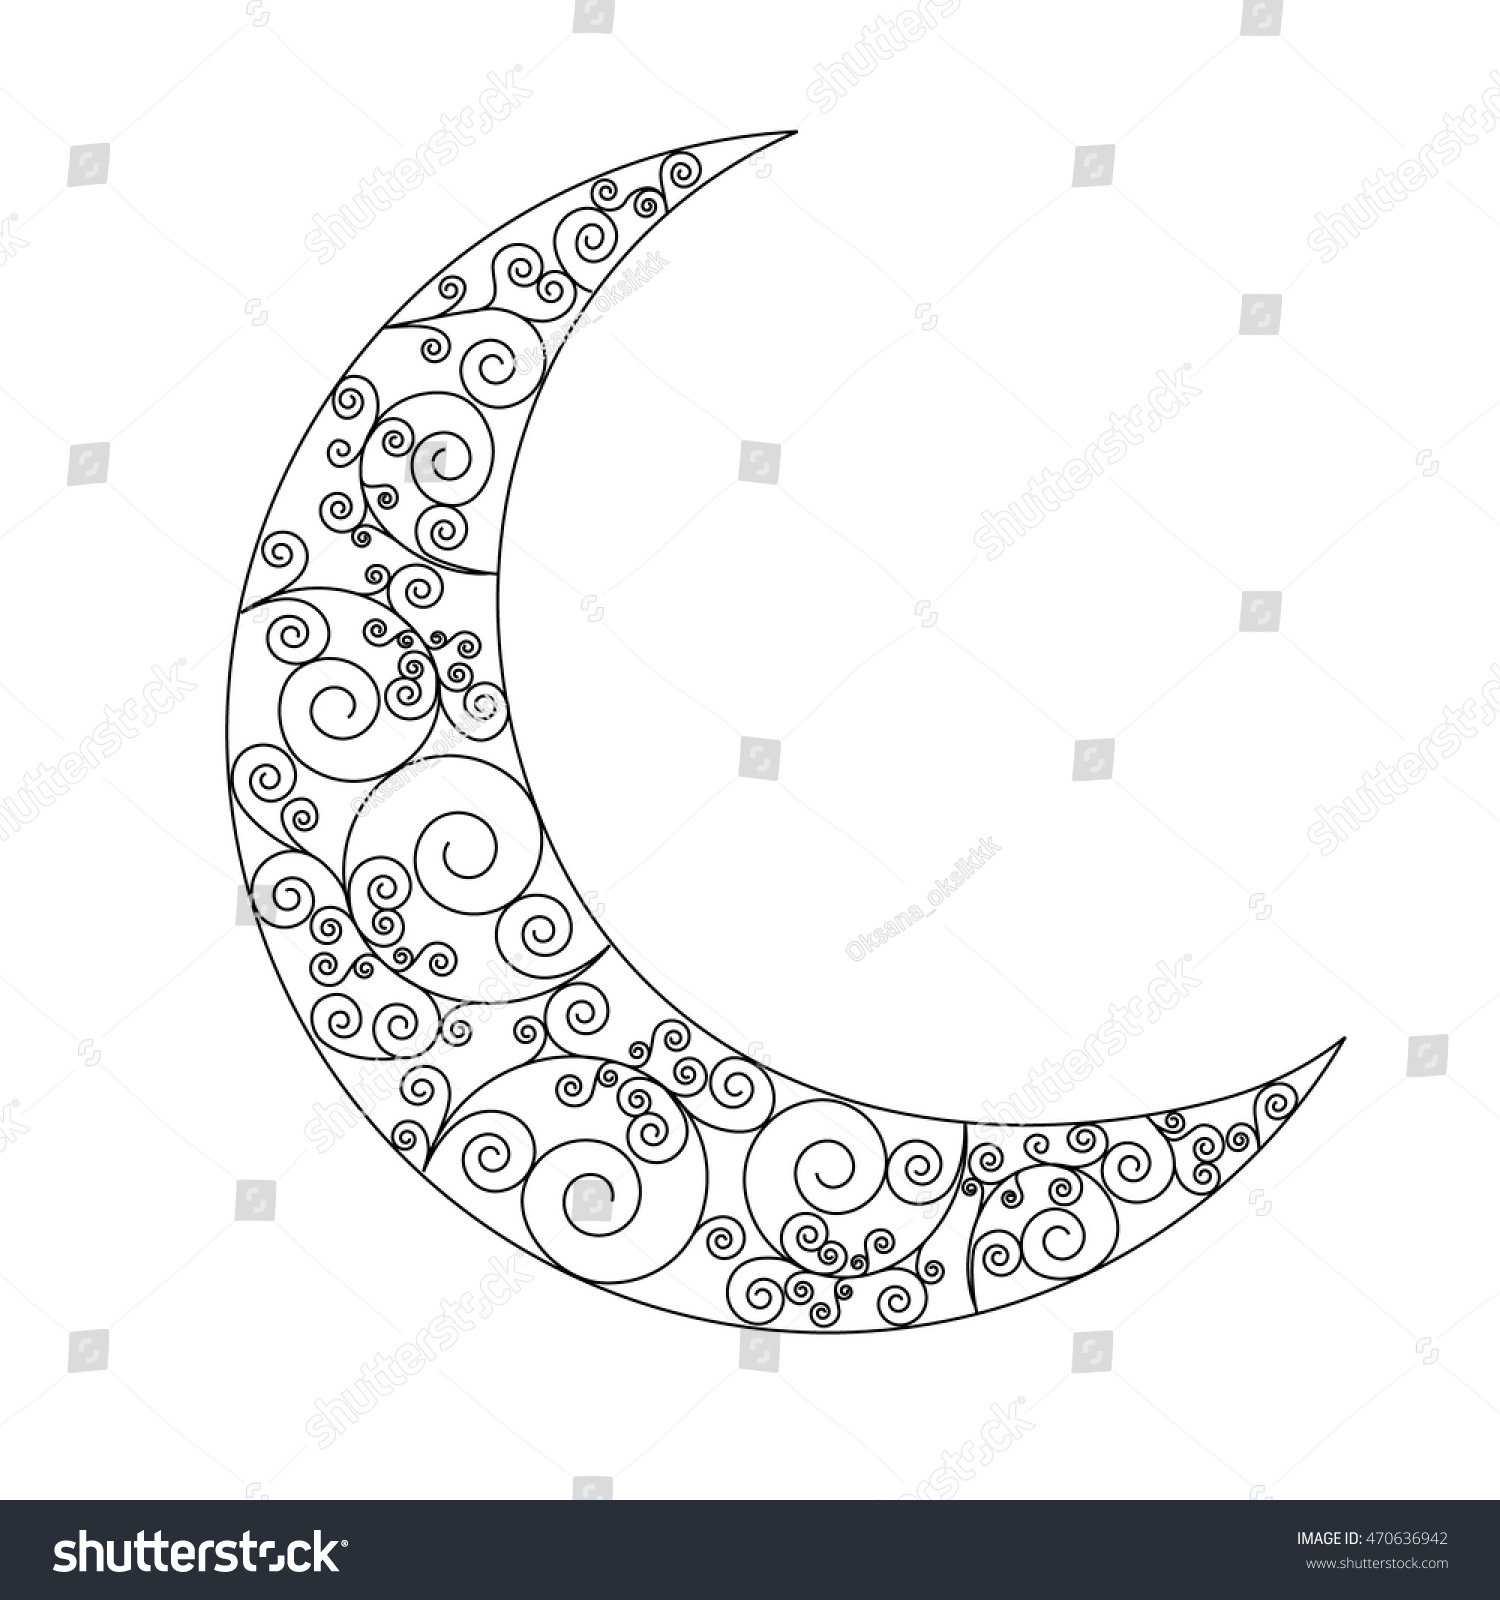 Decorated swirl crescent moon symbol black stock vector 470636942 decorated swirl crescent moon symbol black moon icon on white background can be used biocorpaavc Gallery